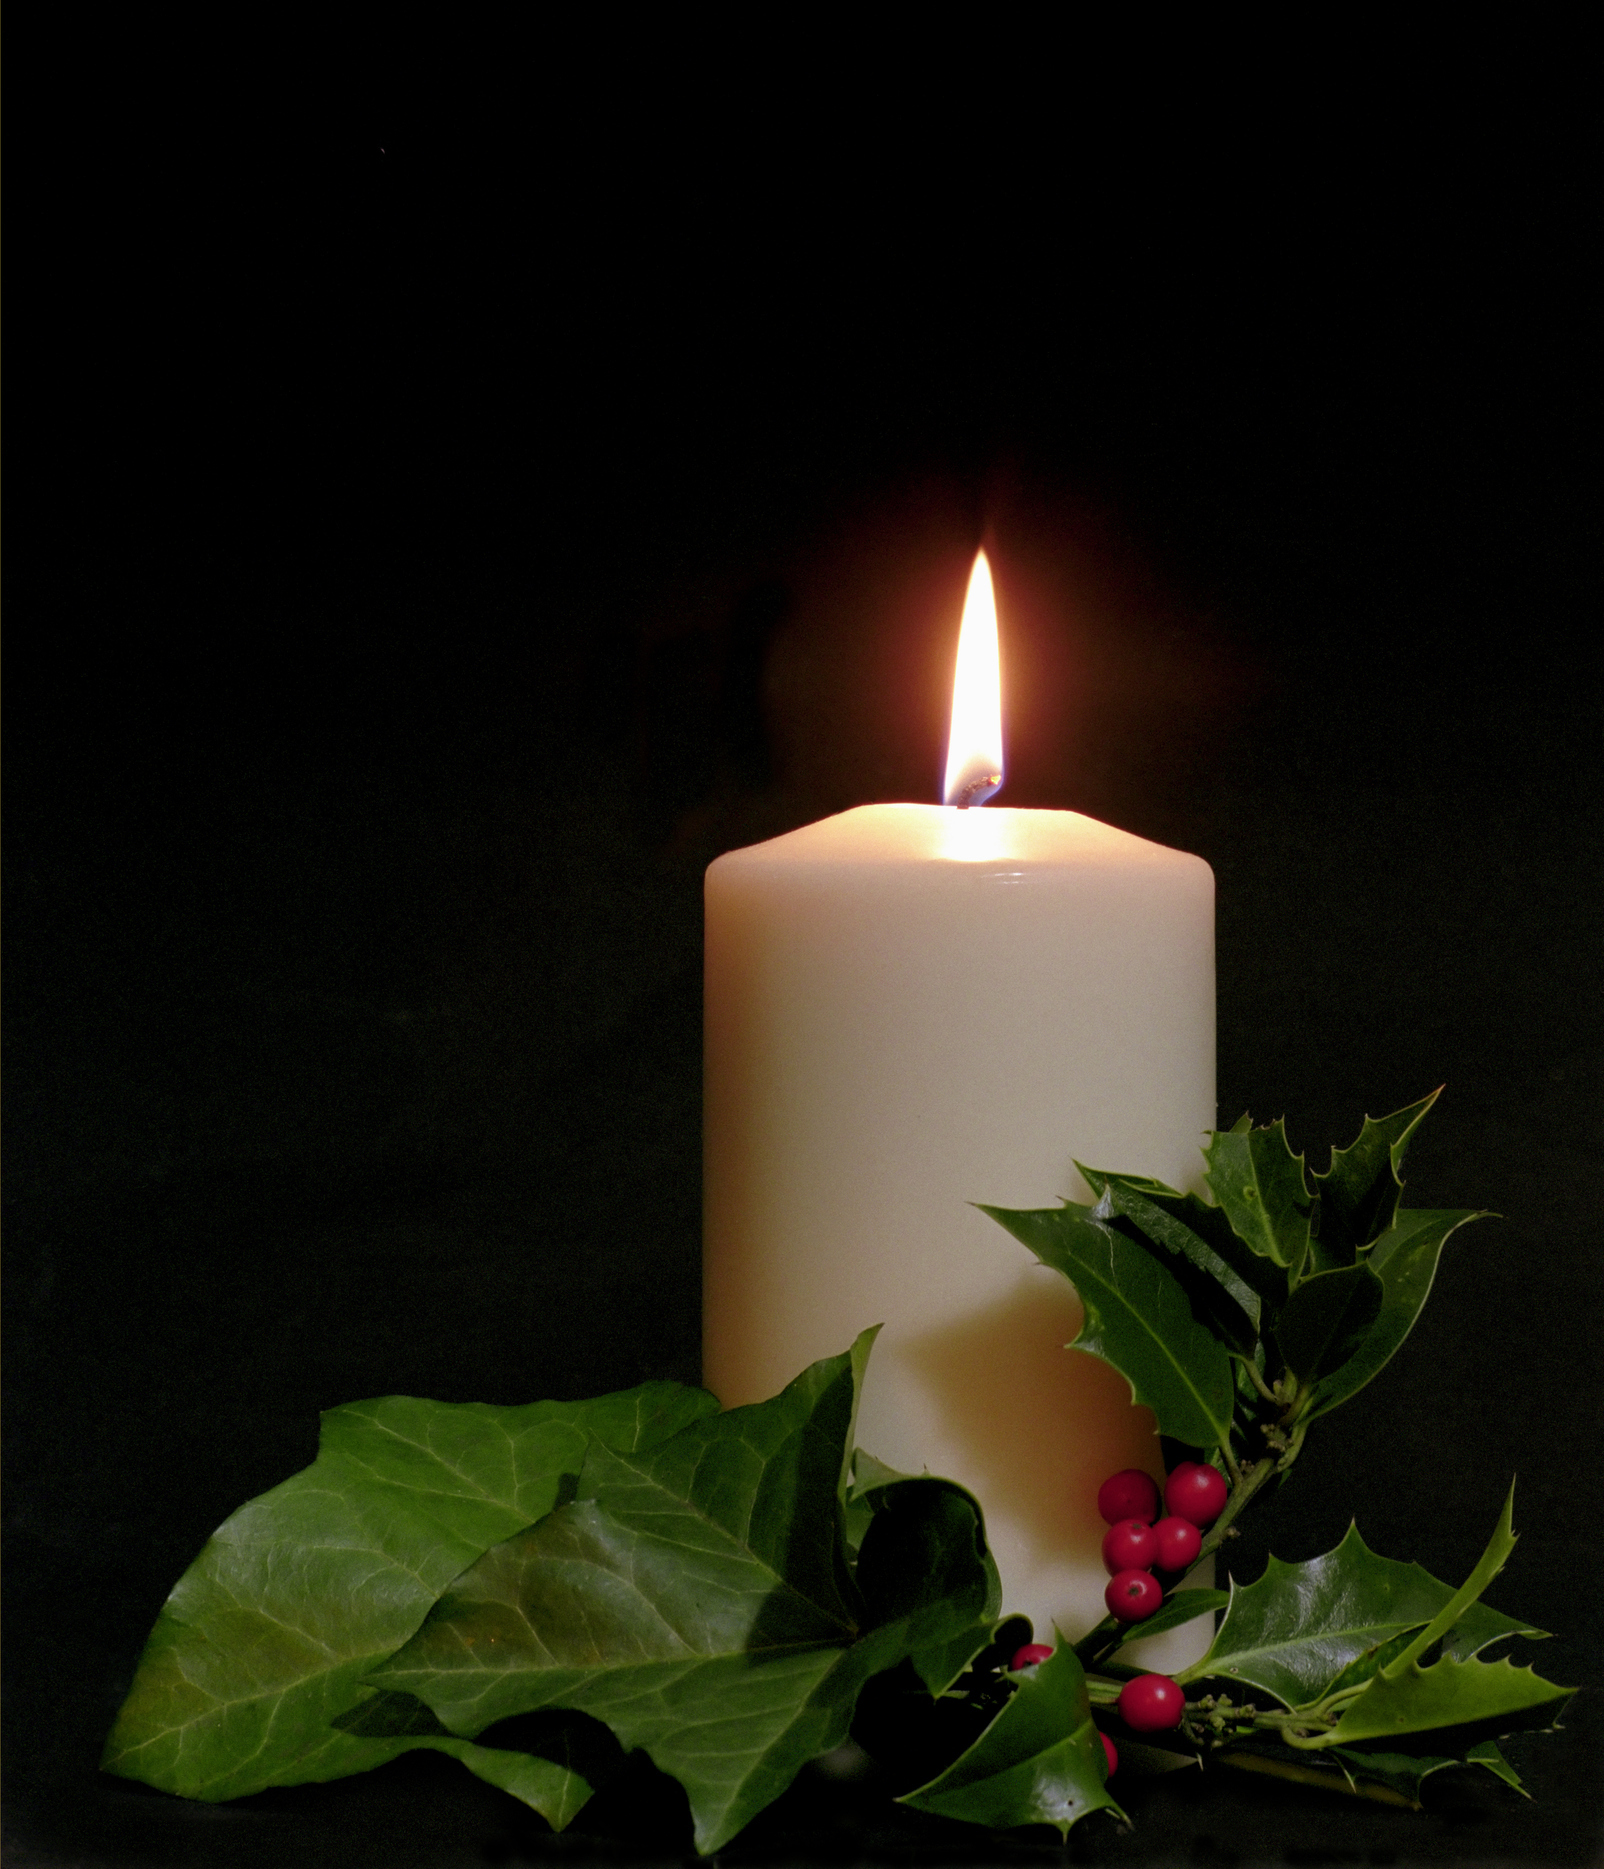 Burning candle surrounded by holly and ivy leaves, traditional christmas plants.